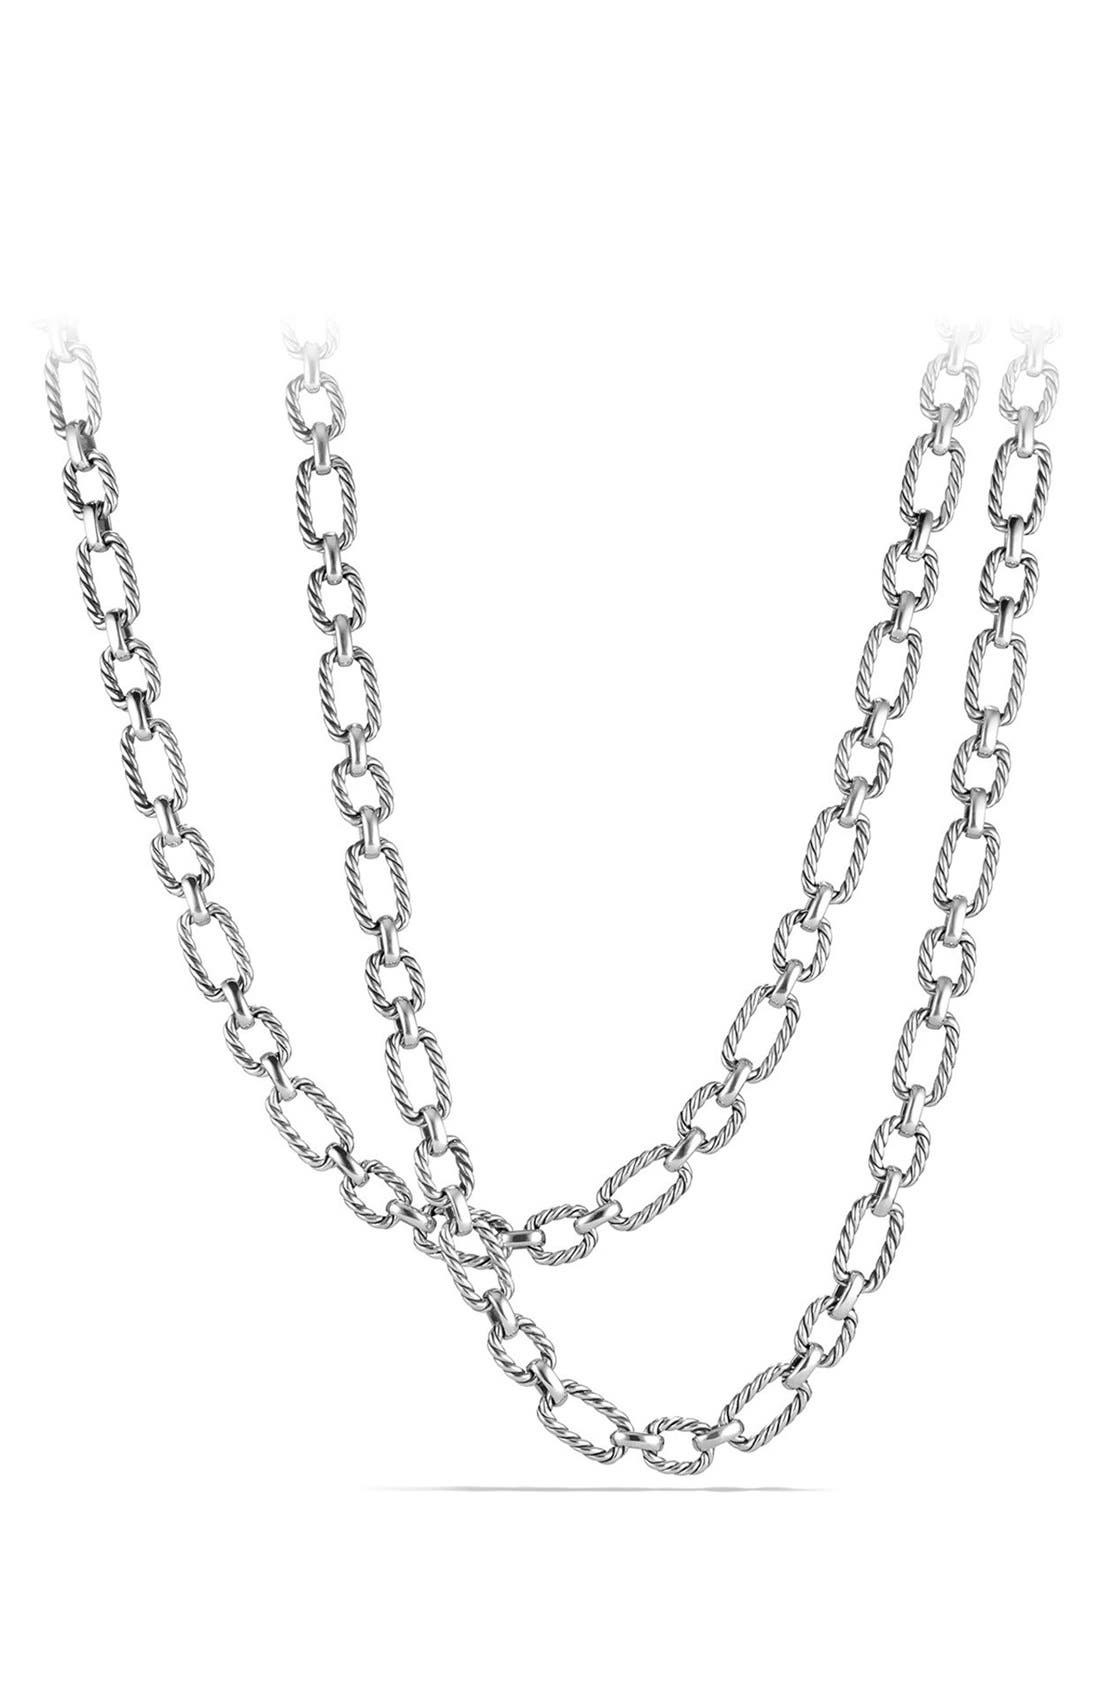 Alternate Image 1 Selected - David Yurman 'Chain' Long Cushion Link Necklace with Blue Sapphires